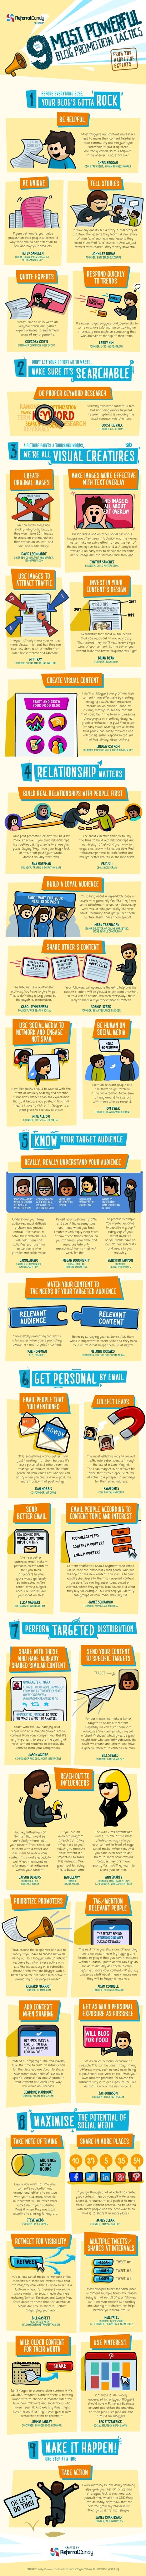 How to Promote Your Stories Effectively #Infographic | Social Media in Manufacturing Today | Scoop.it